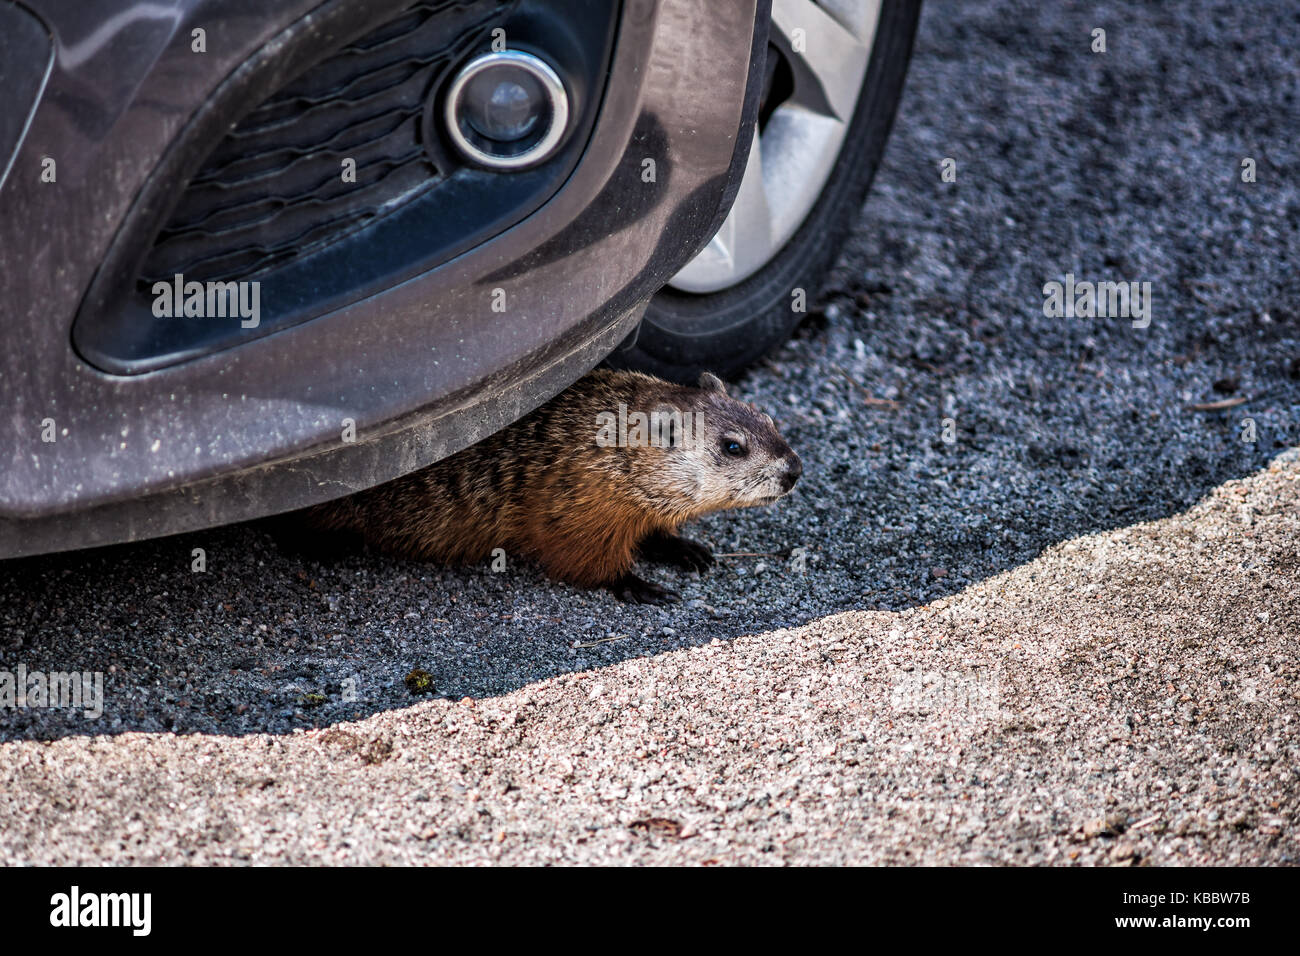 Closeup of rodent, woodchuck, muskrat or groundhog hiding under car by tire in shadow - Stock Image